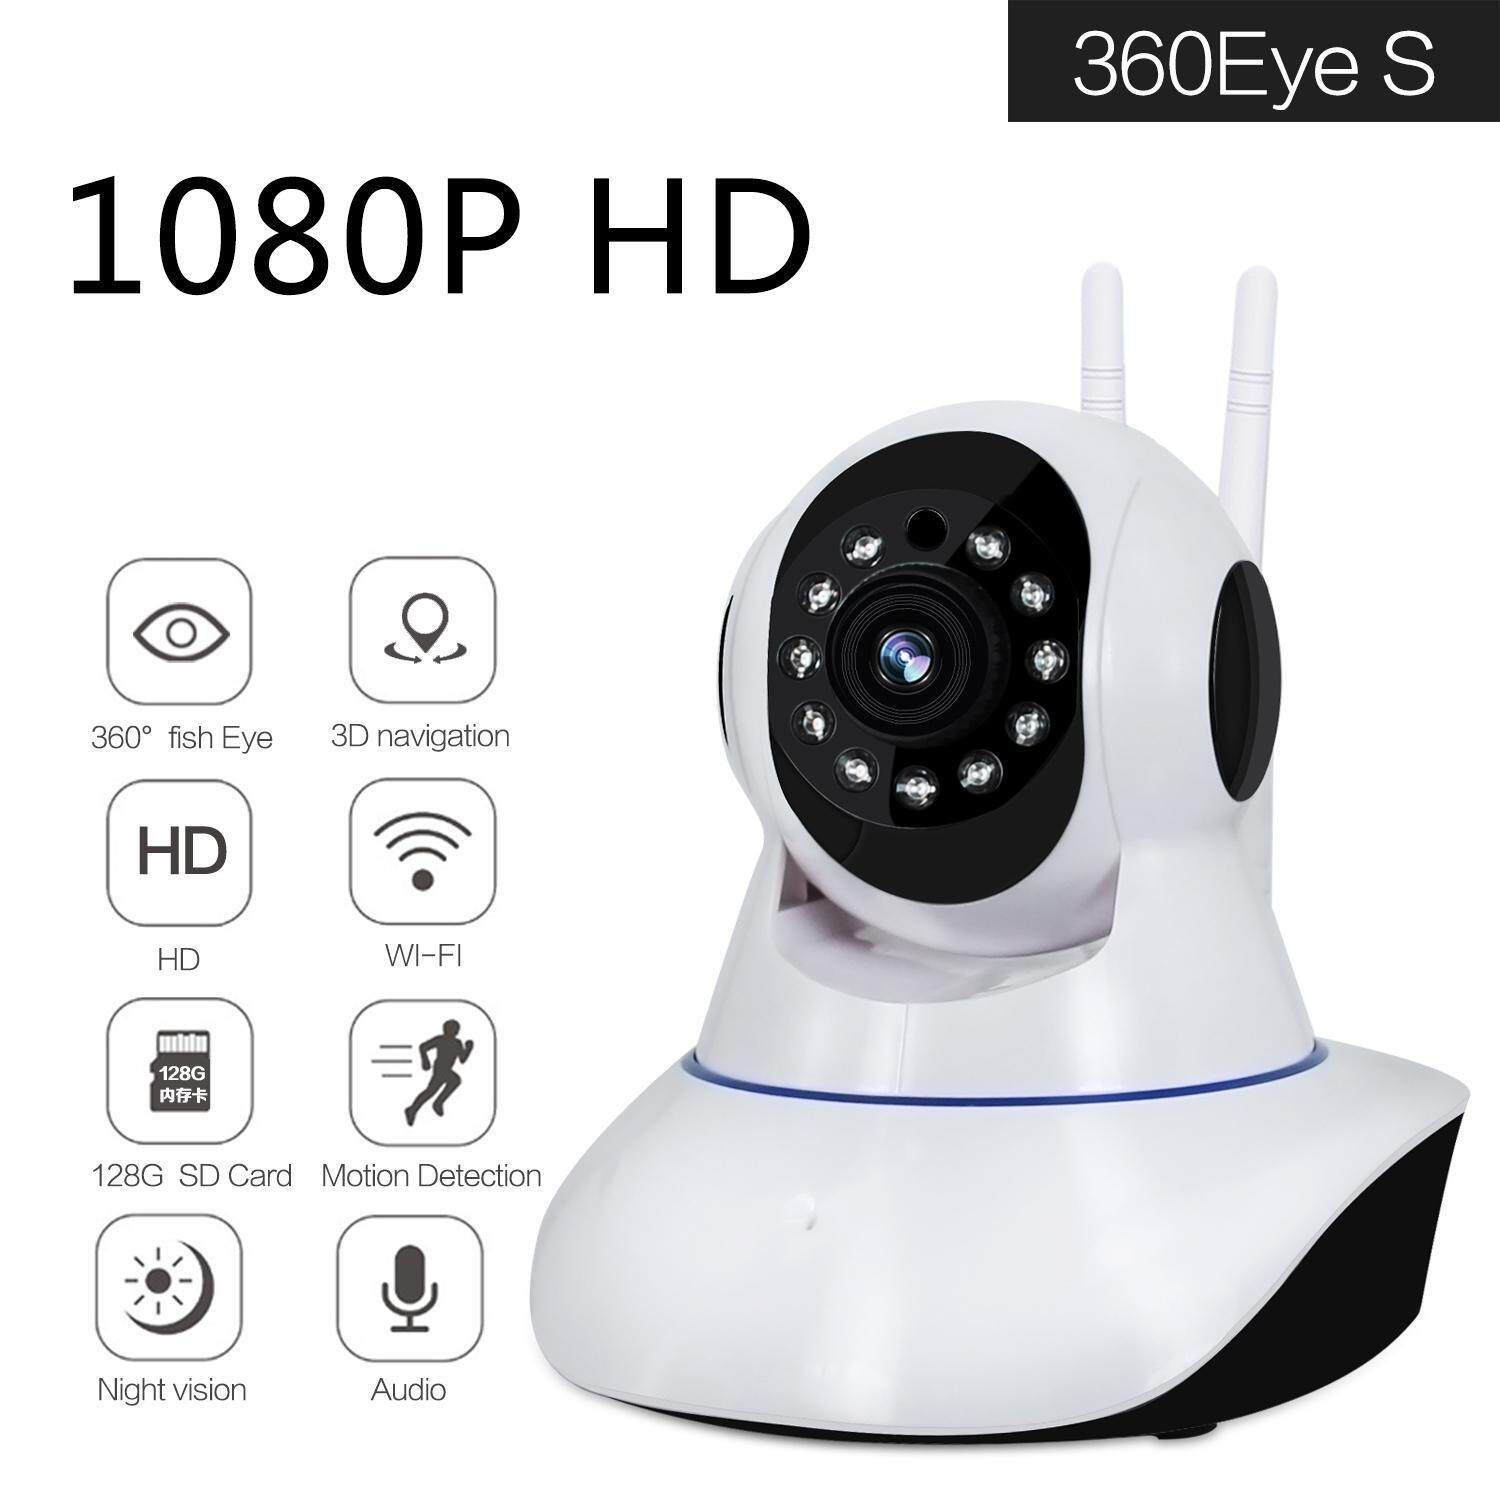 moob 1080P Security Camera Remote Monitoring Camera With Sound Night Vision Security Camera Indoor Wifi Security Camera With Motion Detection HD Camera For Home,Office,Store,EU Plug - intl